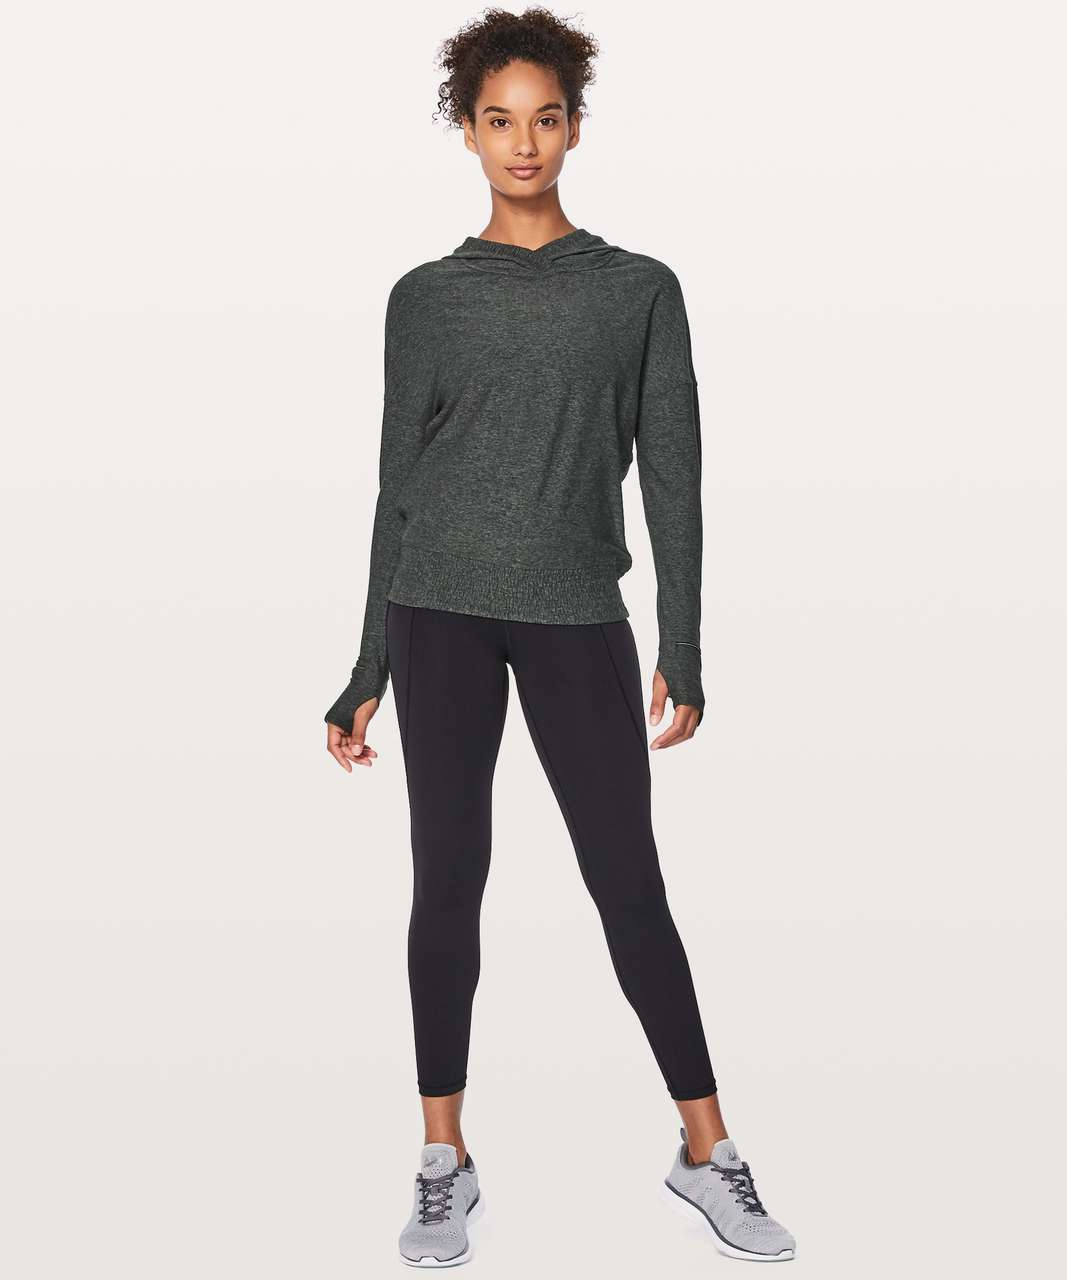 Lululemon Lead The Pack Hoodie - Heathered Dark Cast / Black